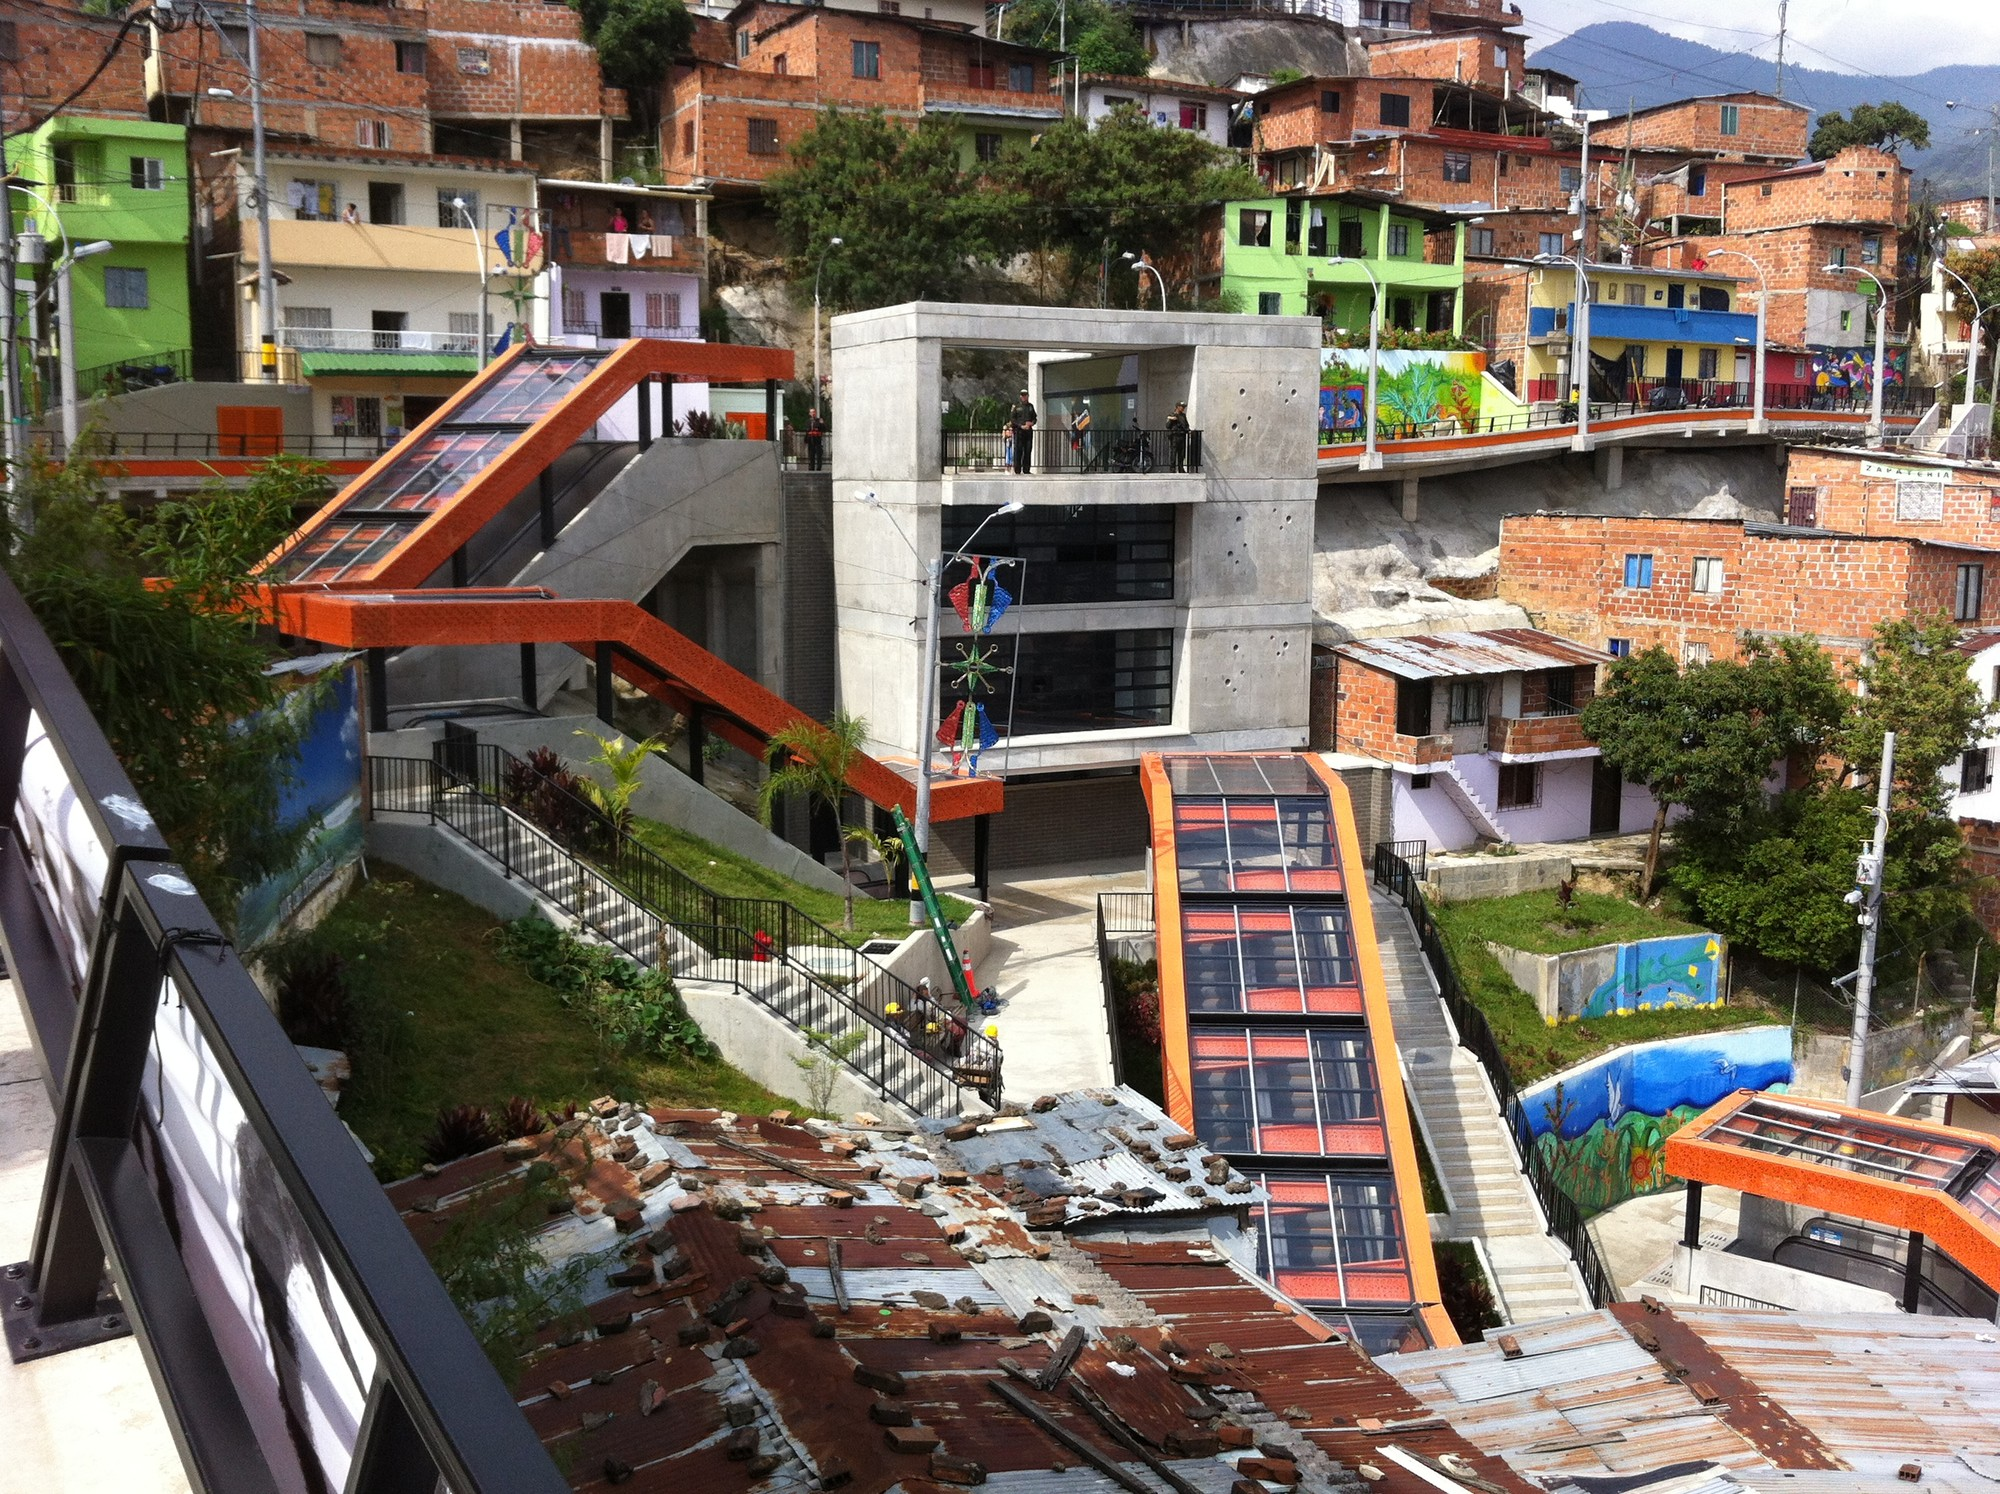 Awards Competition Boosts Momentum of Sustainable Construction , As part of an extensive urban integration project in a huge informal settlement in Medellín, Colombia, the recently-constructed system of escalators with public squares and balconies addresses serious problems regarding connectivity, security and coexistence.